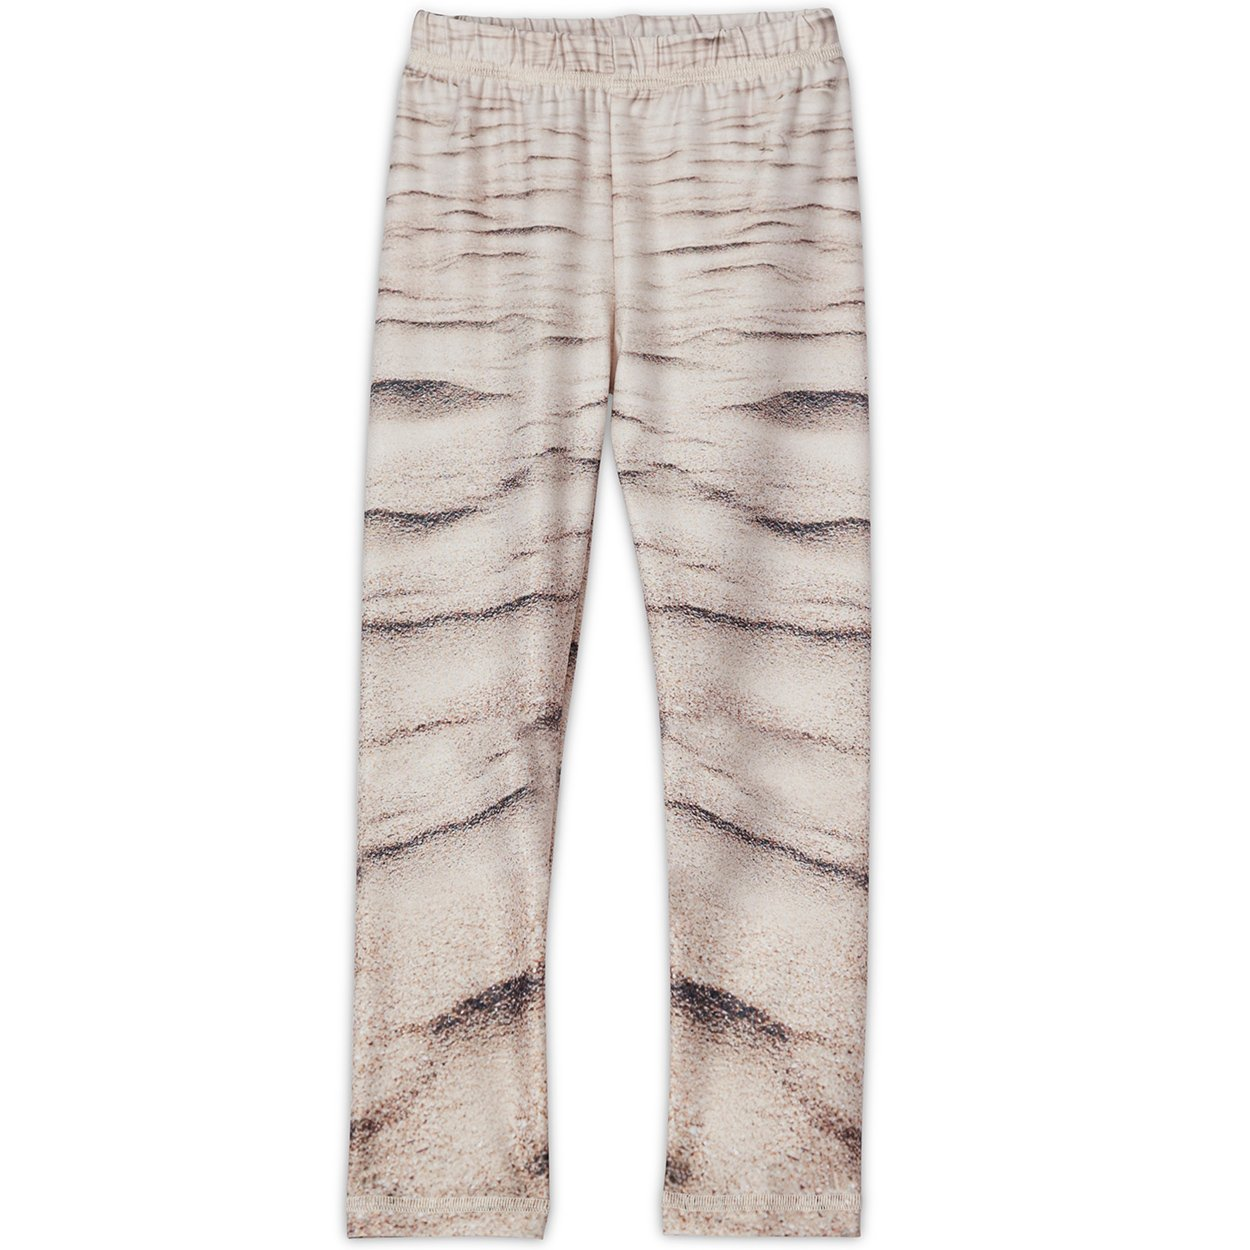 Sand Photo Leggings Kids Sunpoplife